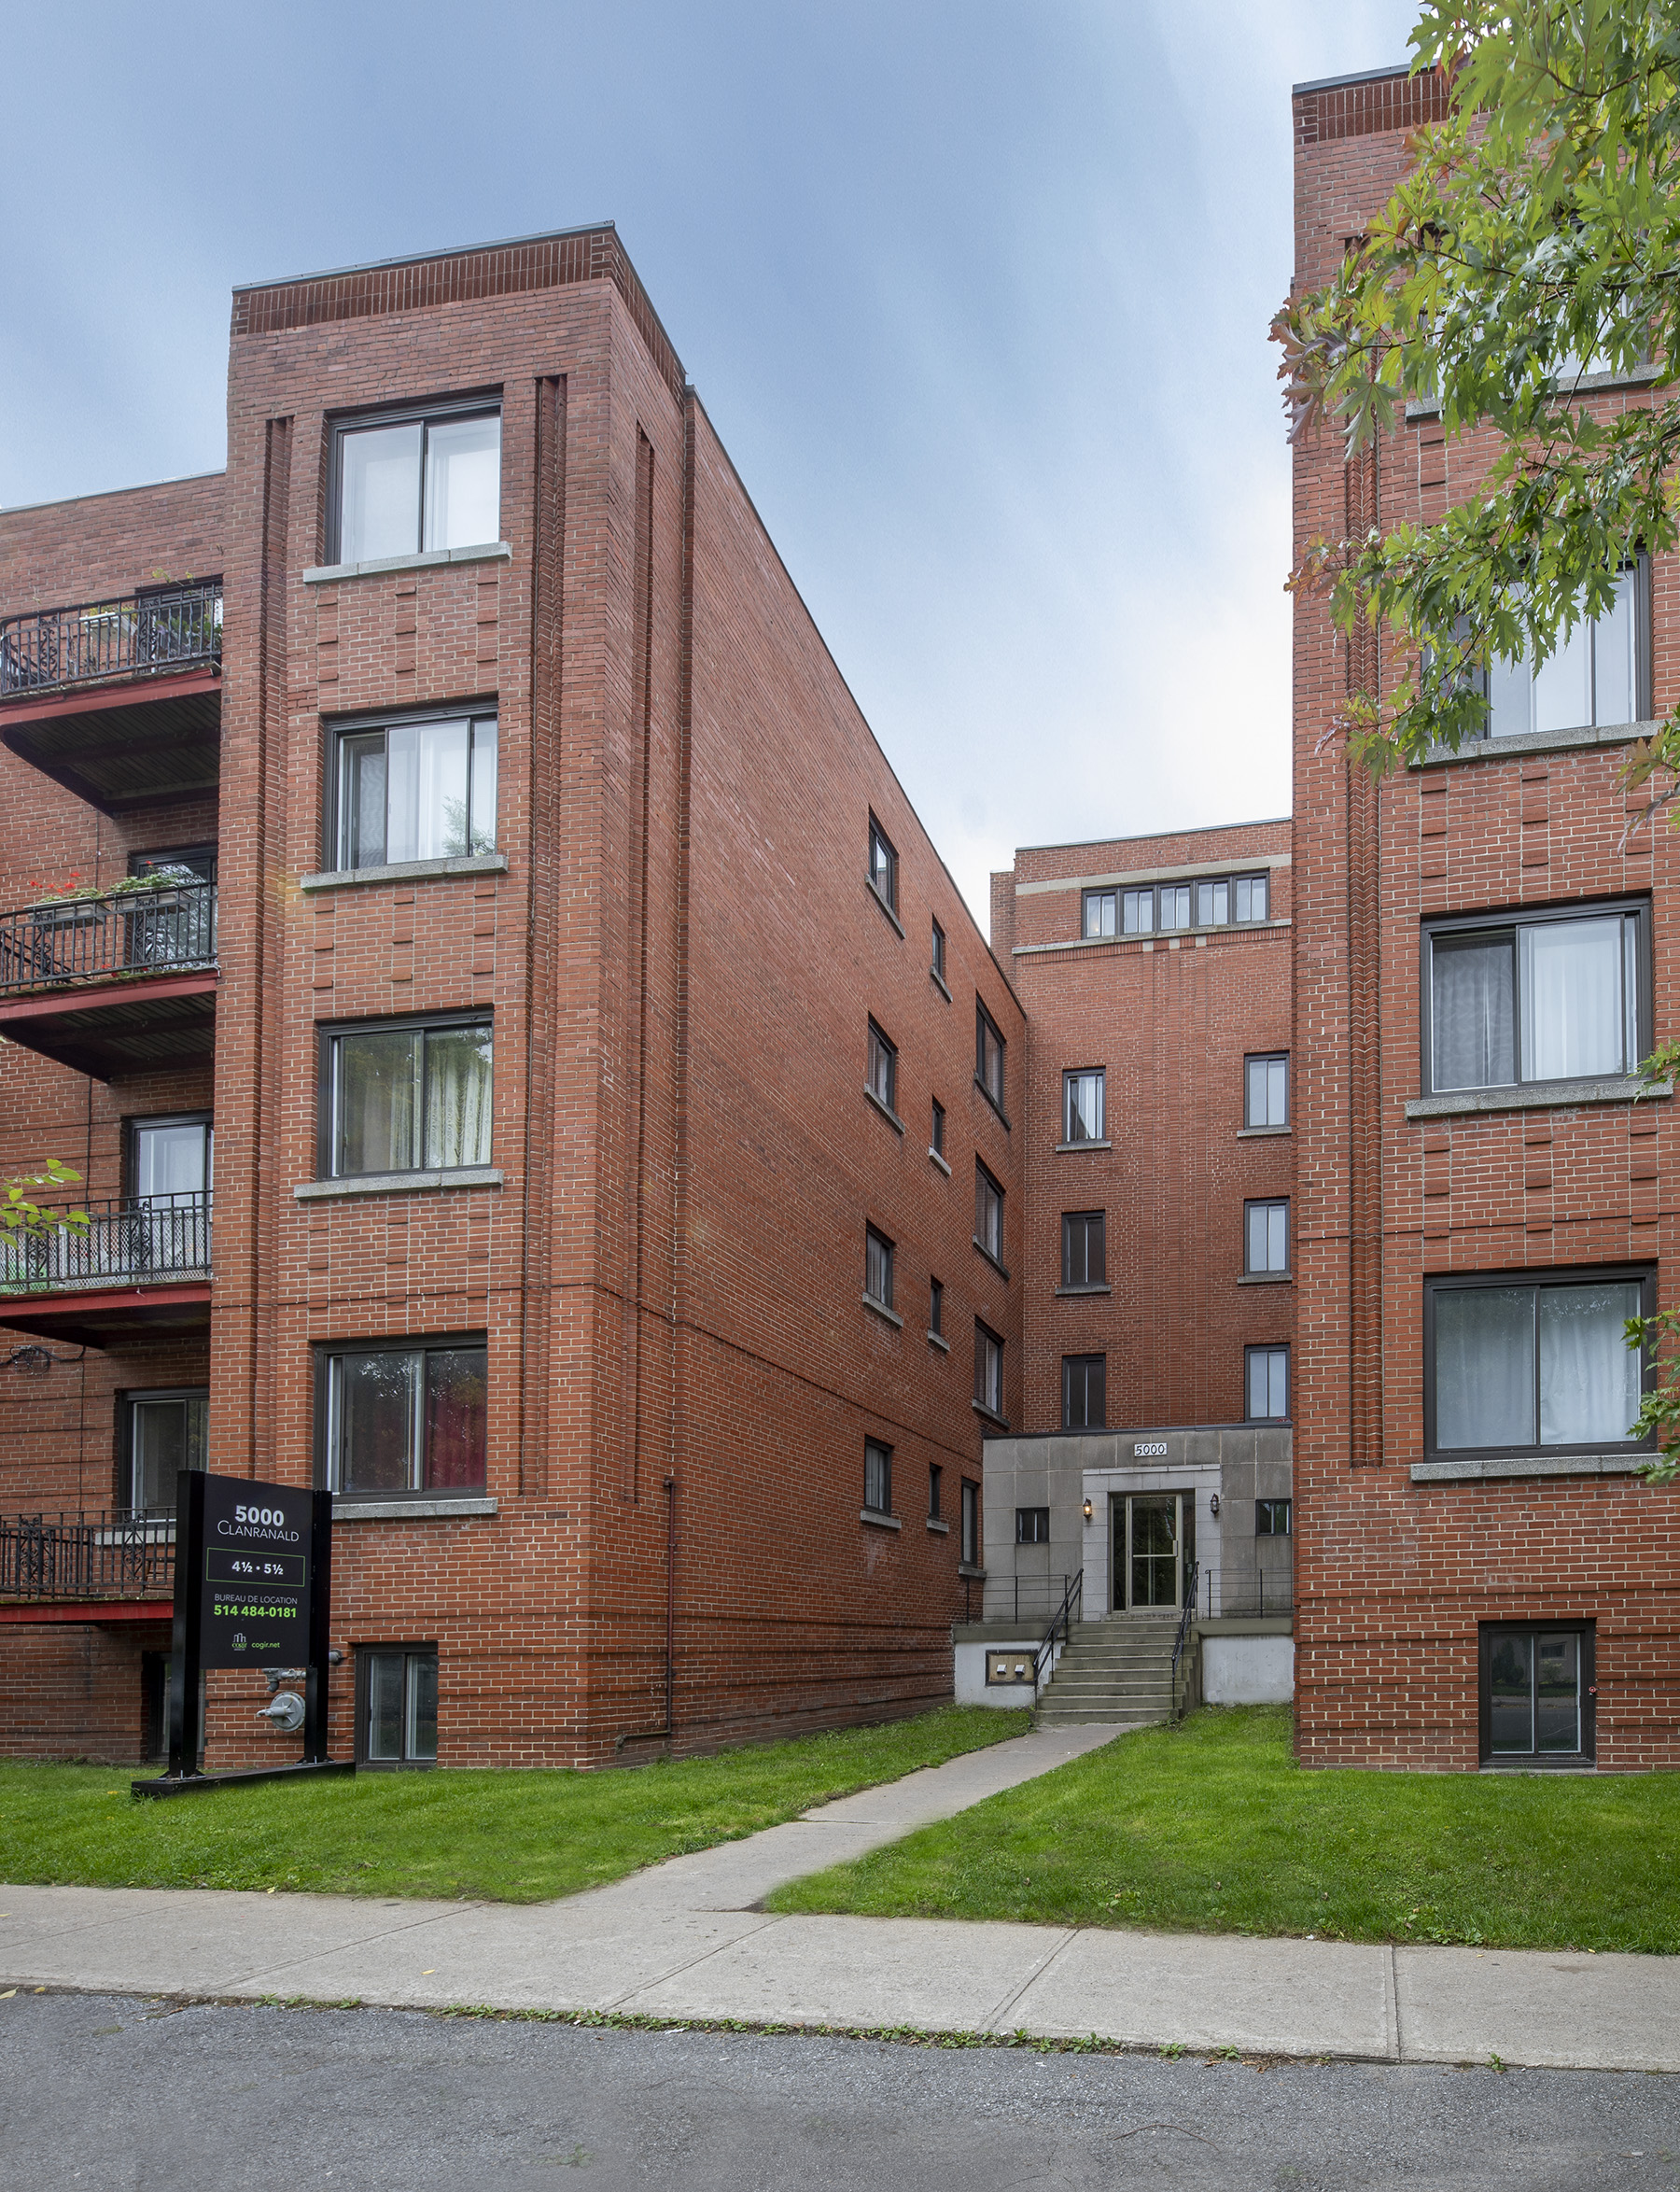 2 bedroom Apartments for rent in Cote-des-Neiges at 5000 Clanranald - Photo 02 - RentQuebecApartments – L401548